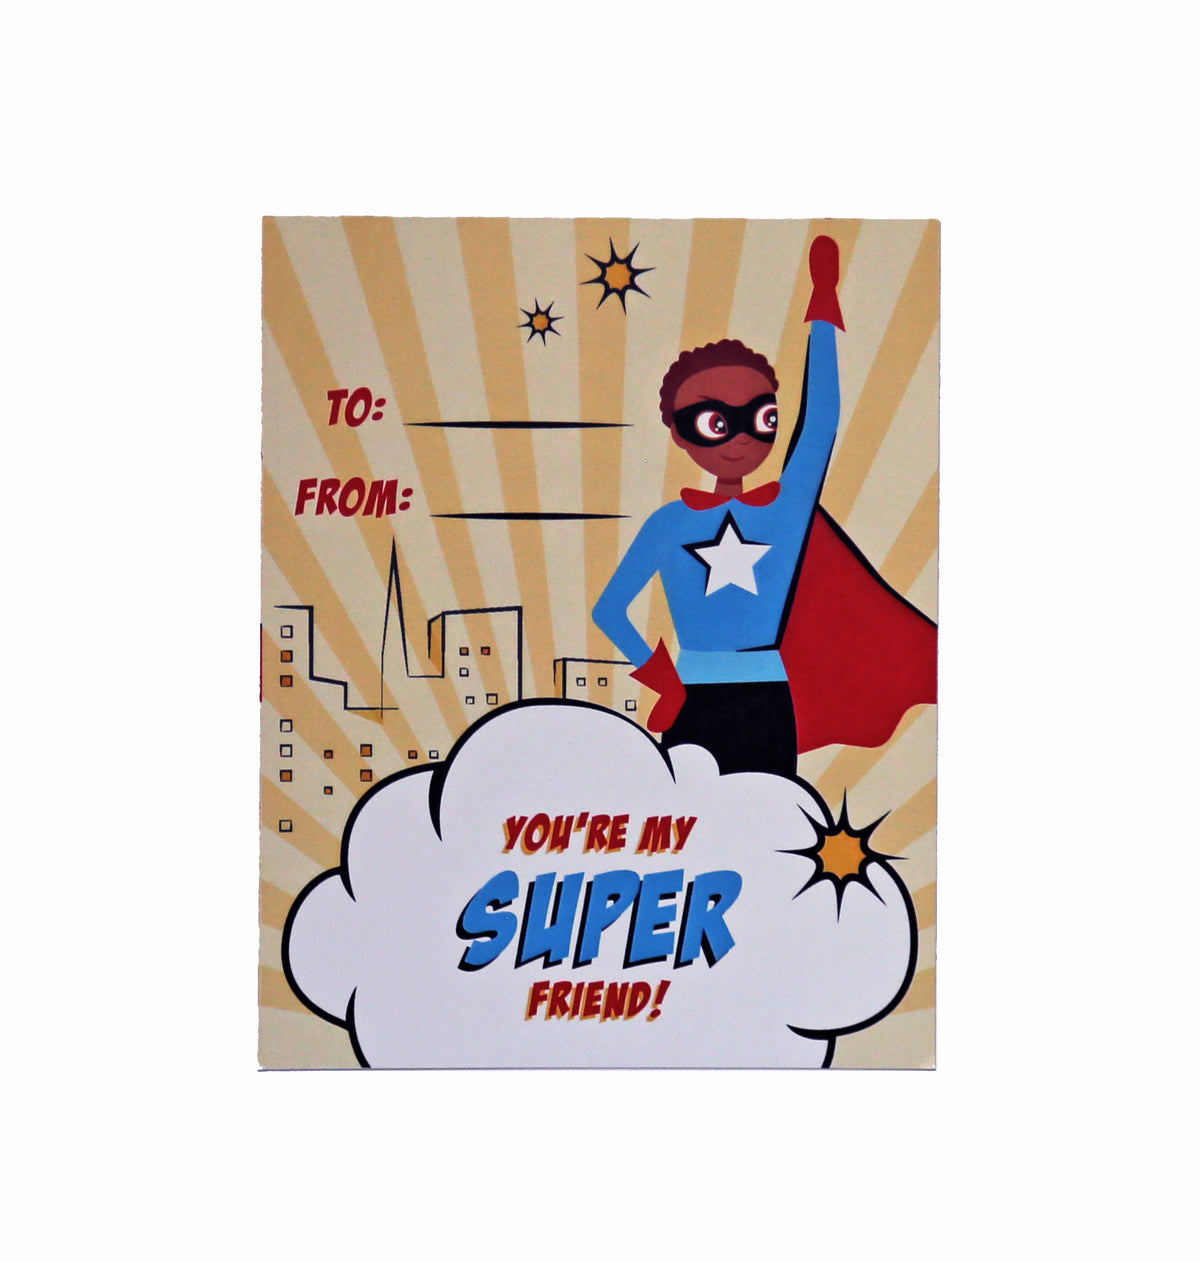 Superhero Valentine's Day Exchange Cards